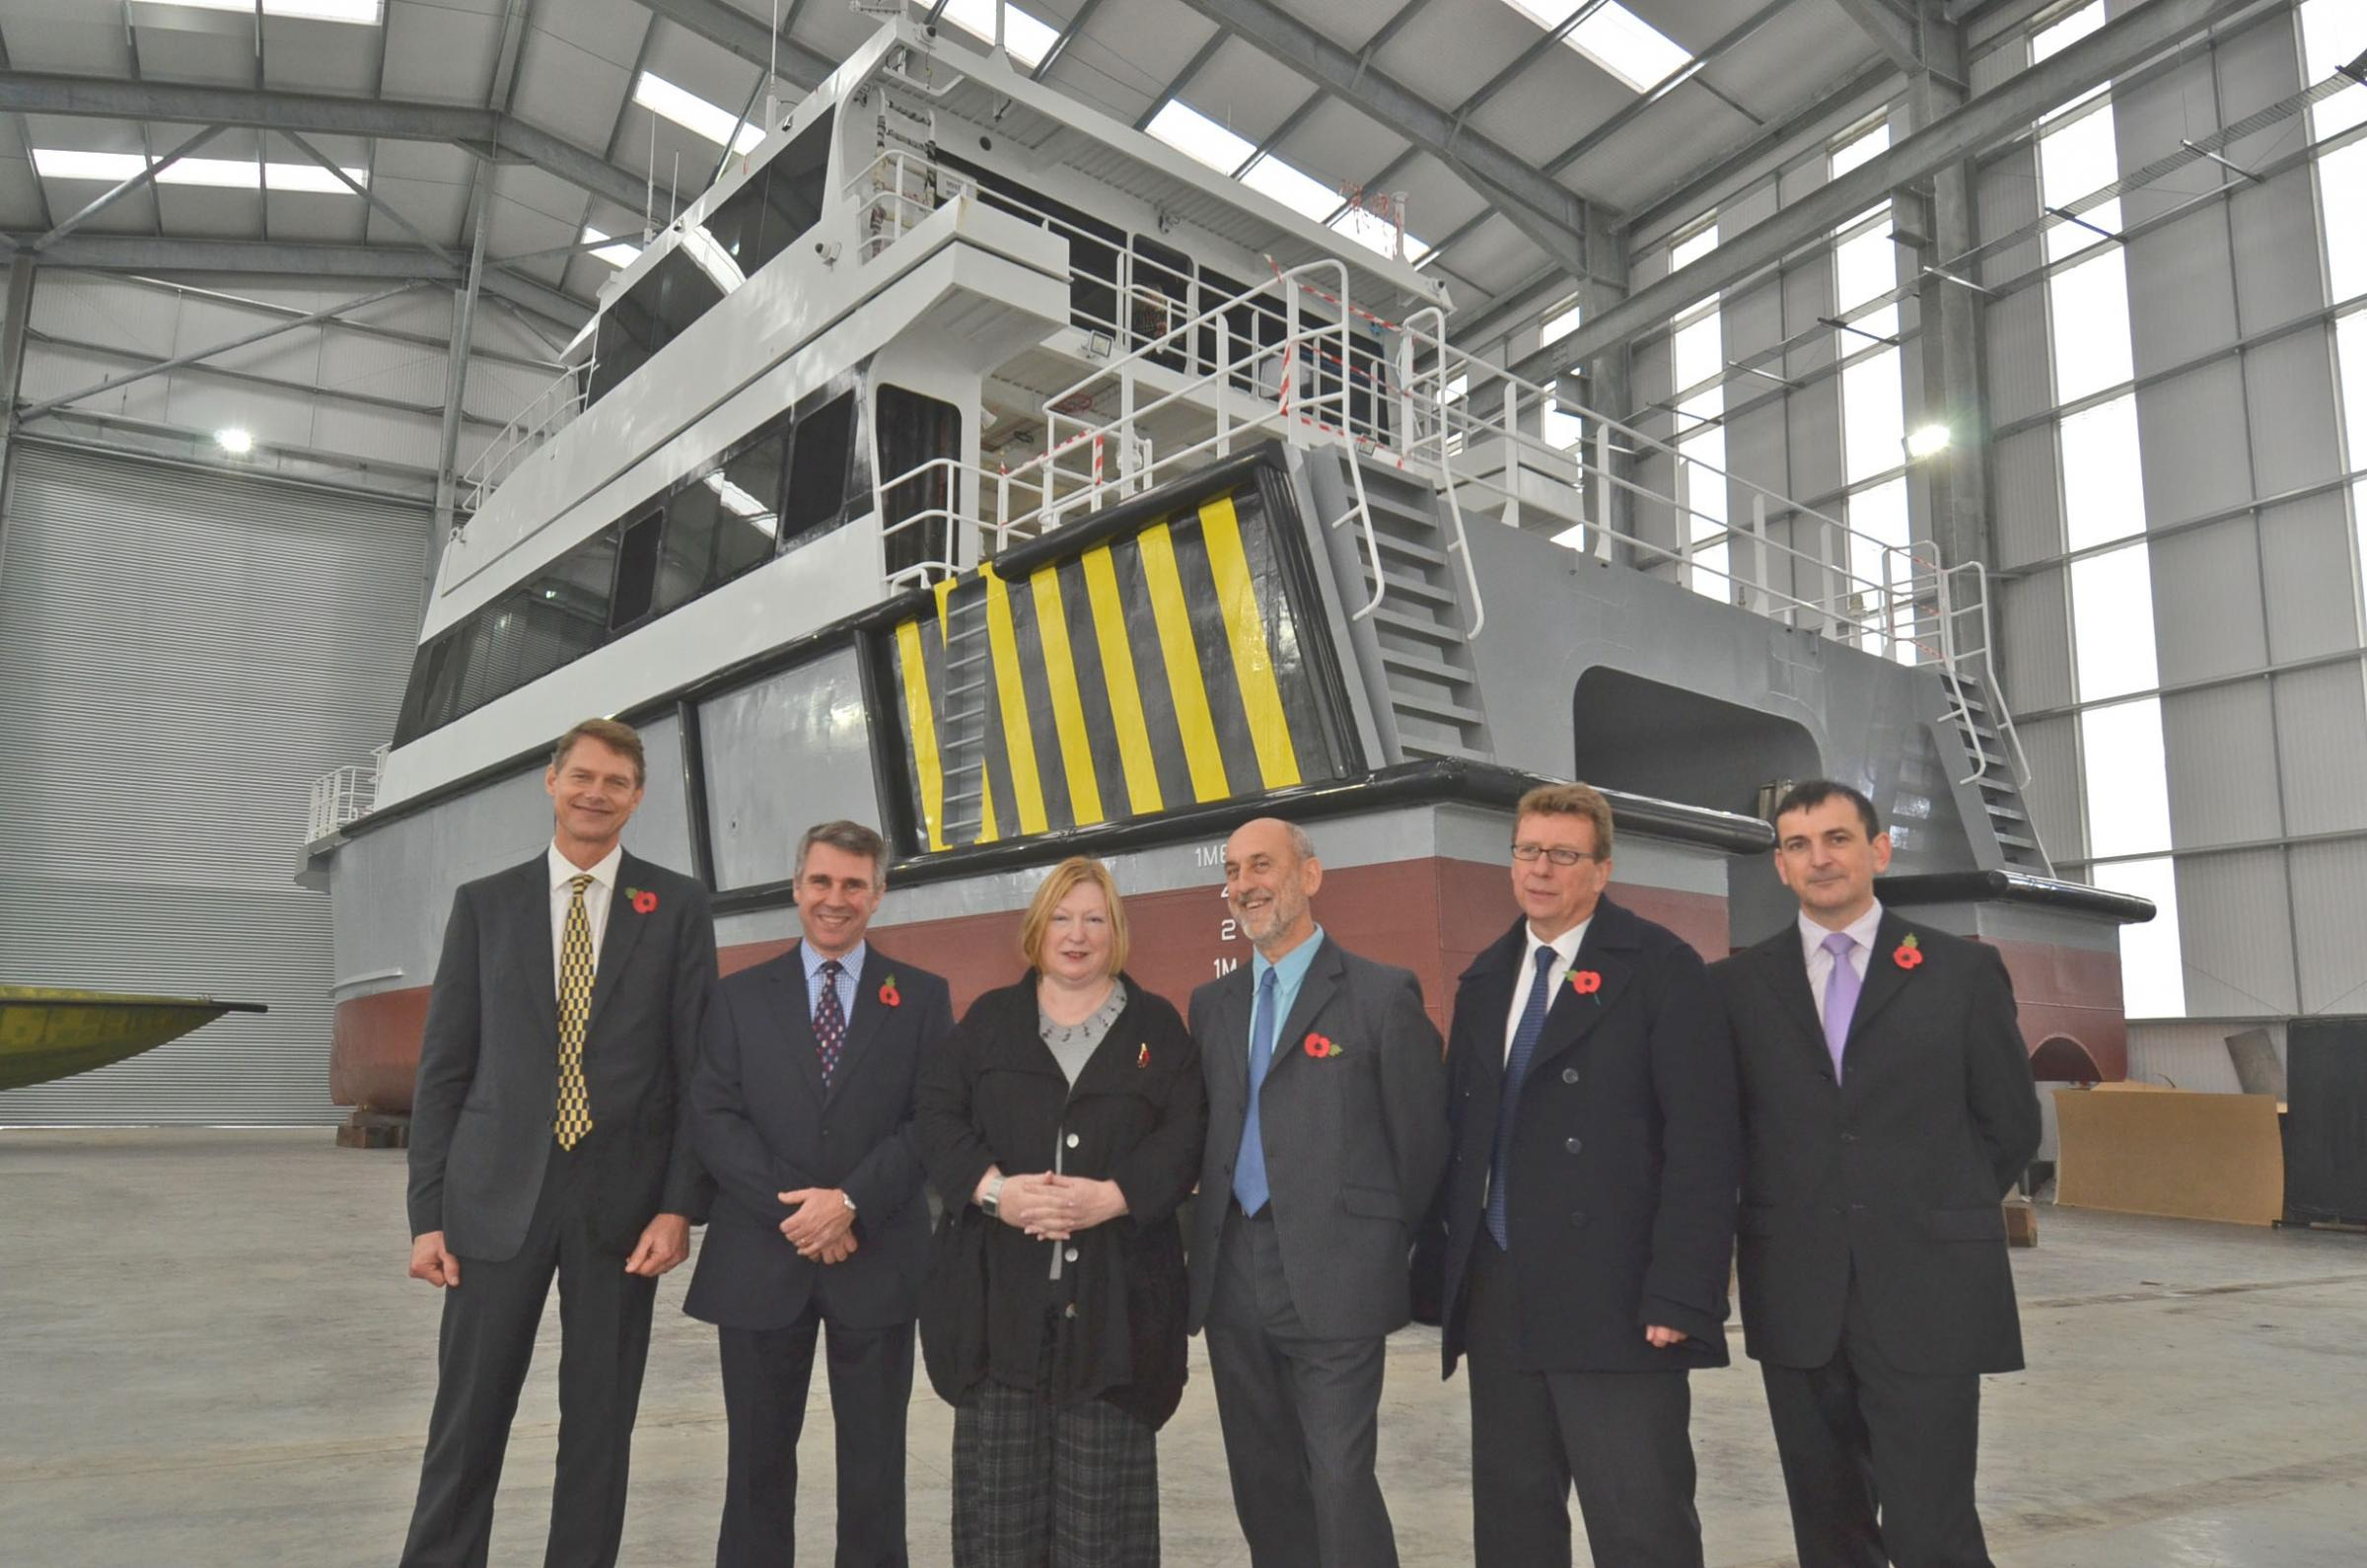 Edwina Hart opens the £1.5m Mustand Marine boat building construction hall in November. PICTURE: Martin Cavaney.